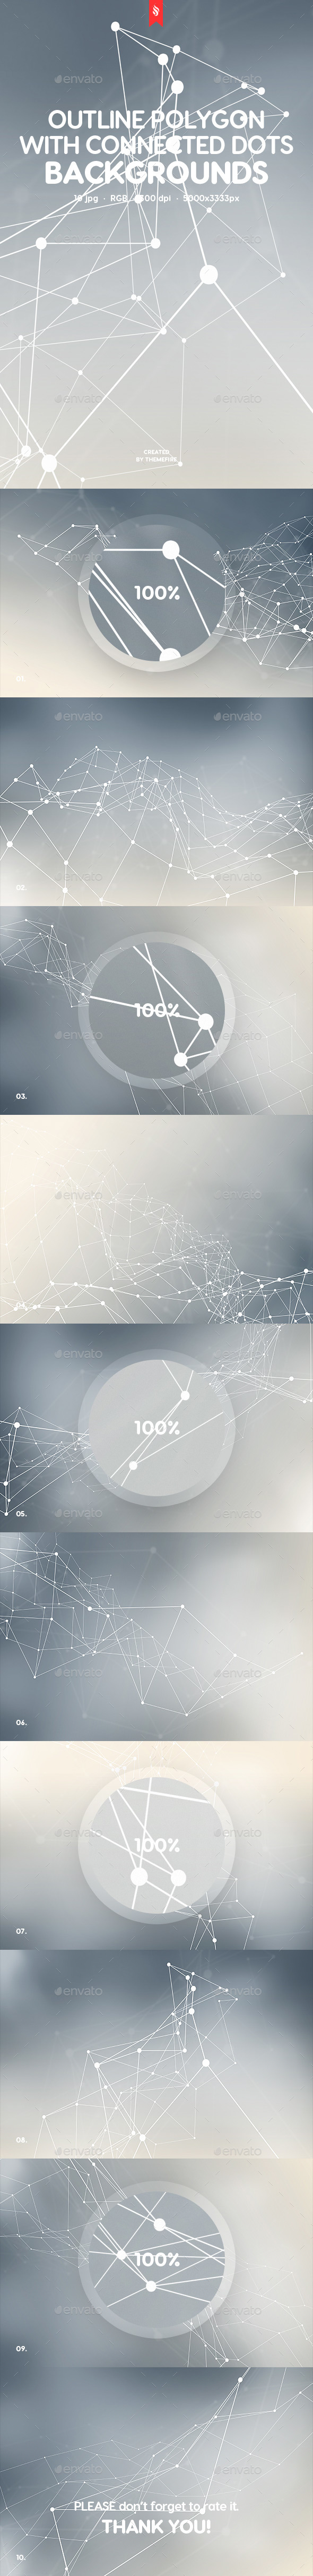 Outline Polygon with Connected Dots with Blur Effect Backgrounds - Backgrounds Graphics